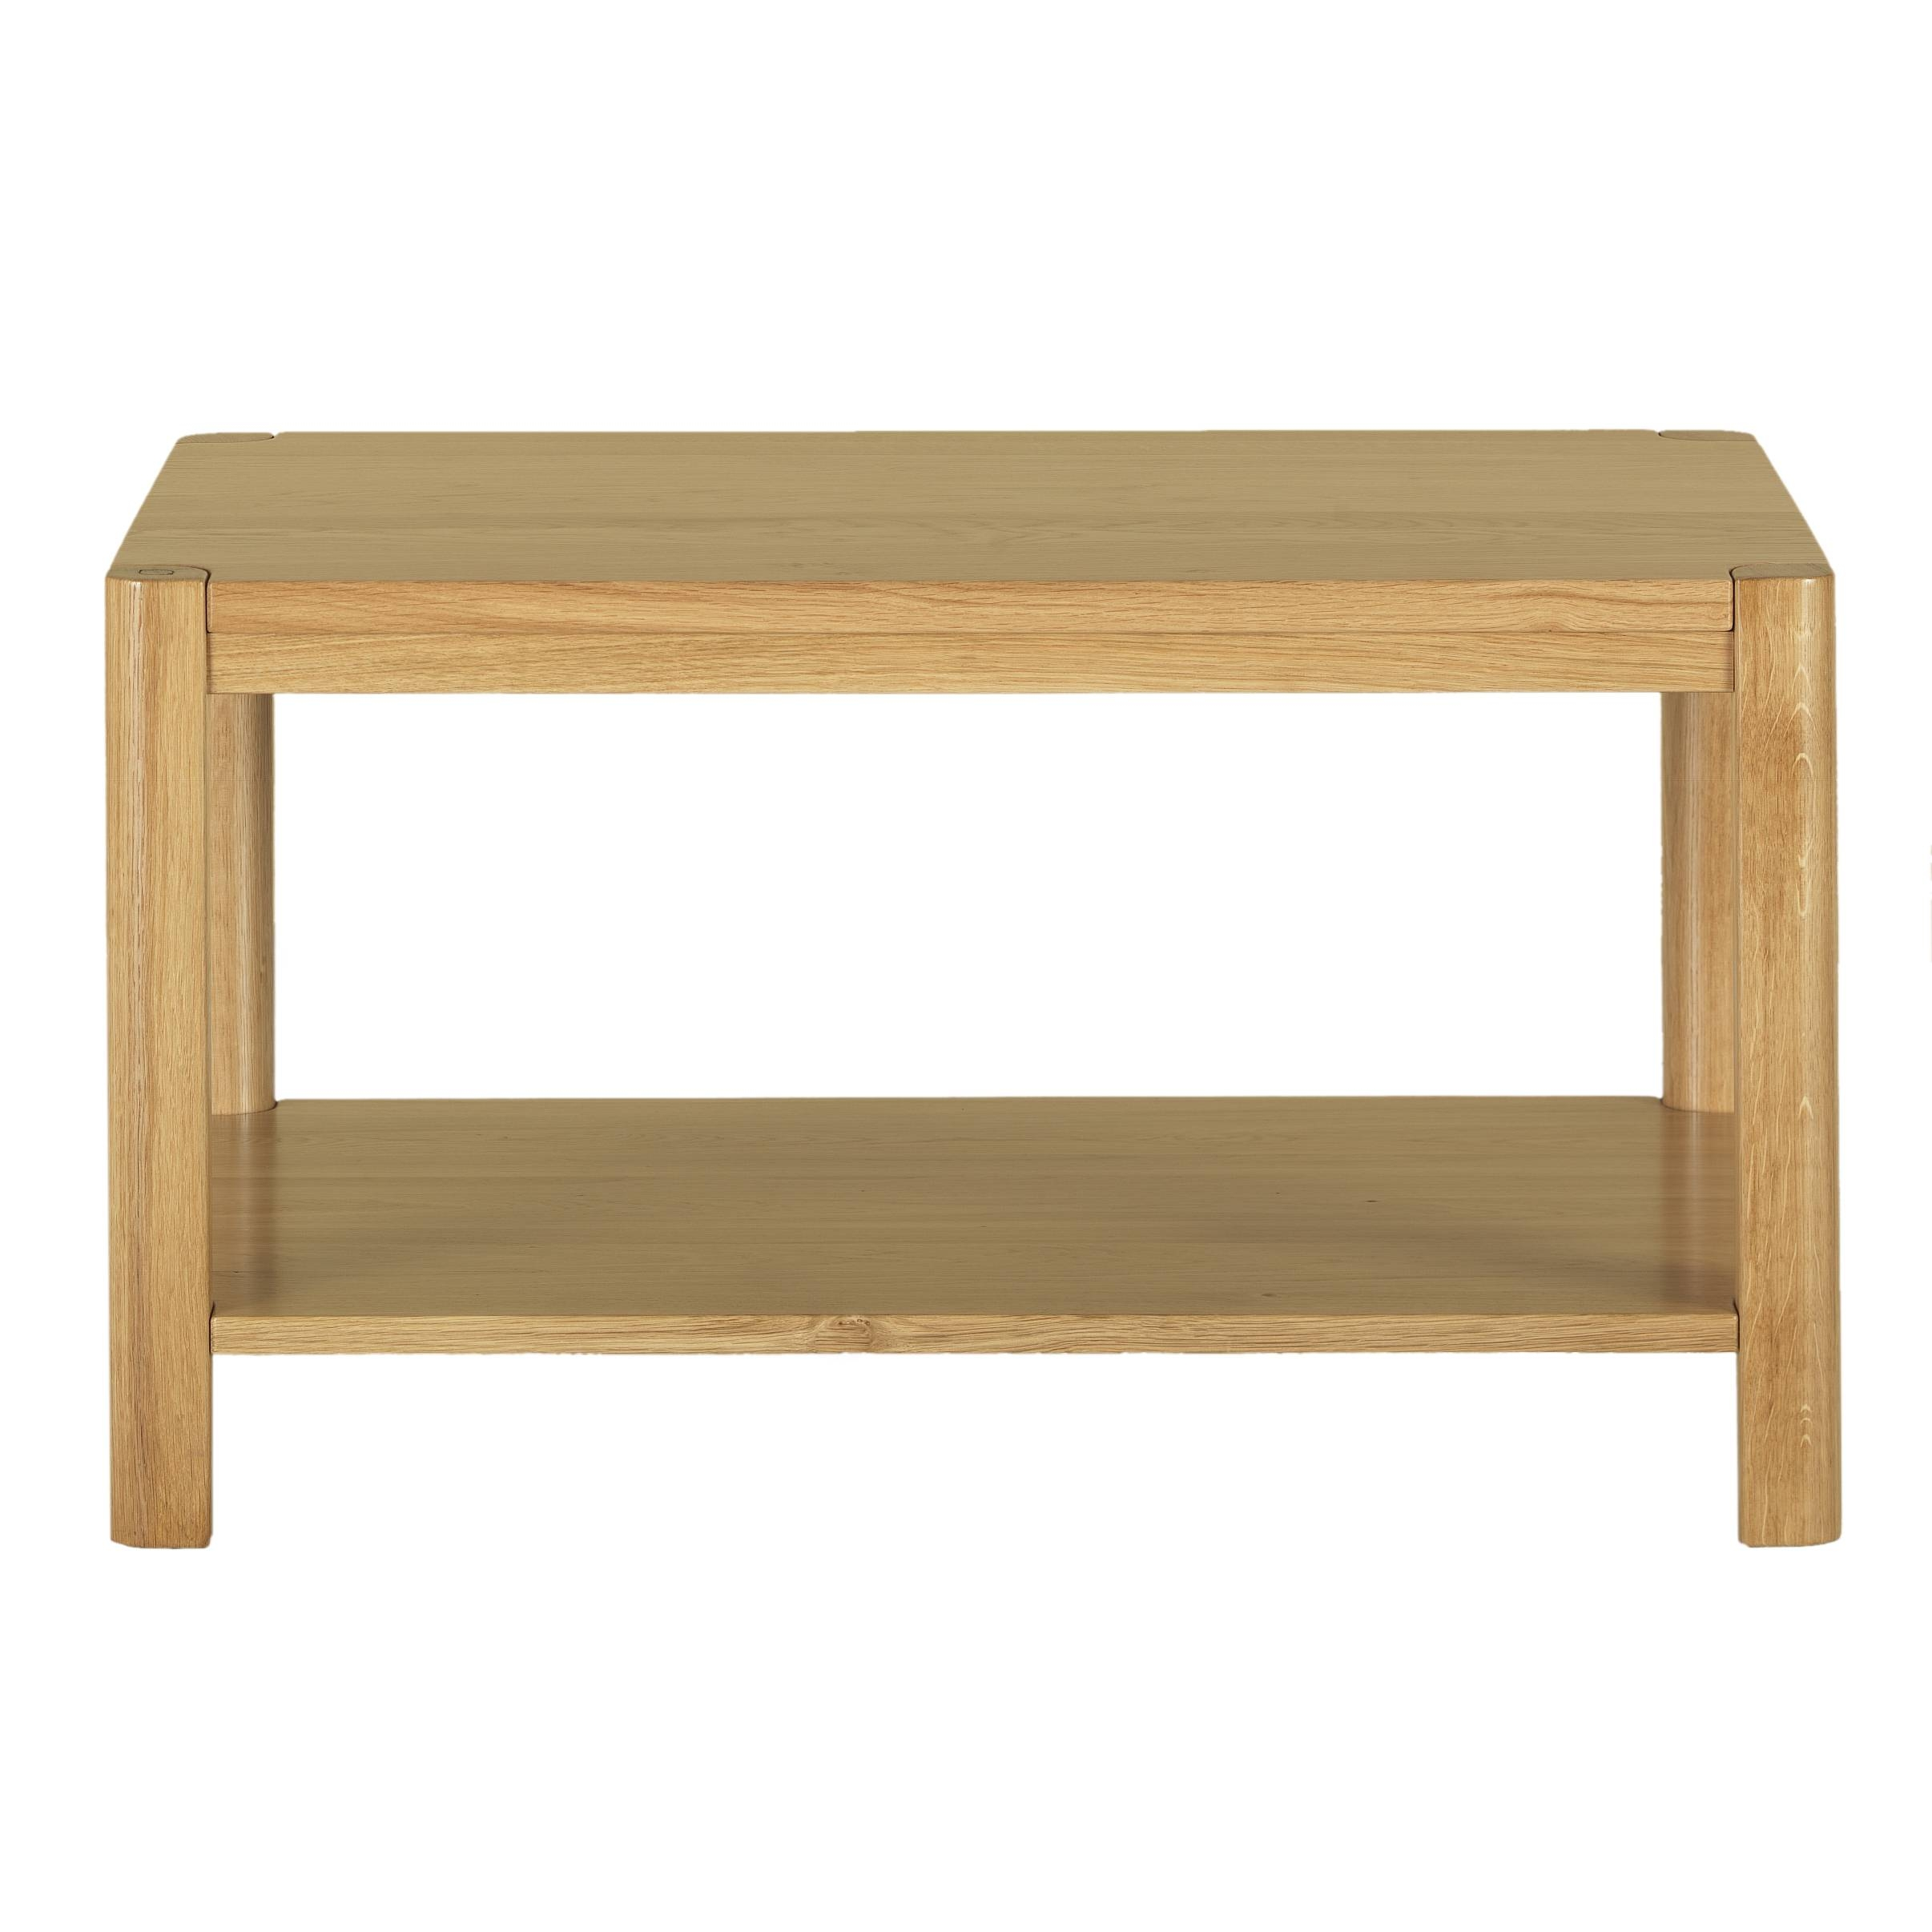 Favorites Small Coffee Table Ideas – White Small Coffee Table throughout Oak Coffee Tables With Shelf (Image 13 of 30)